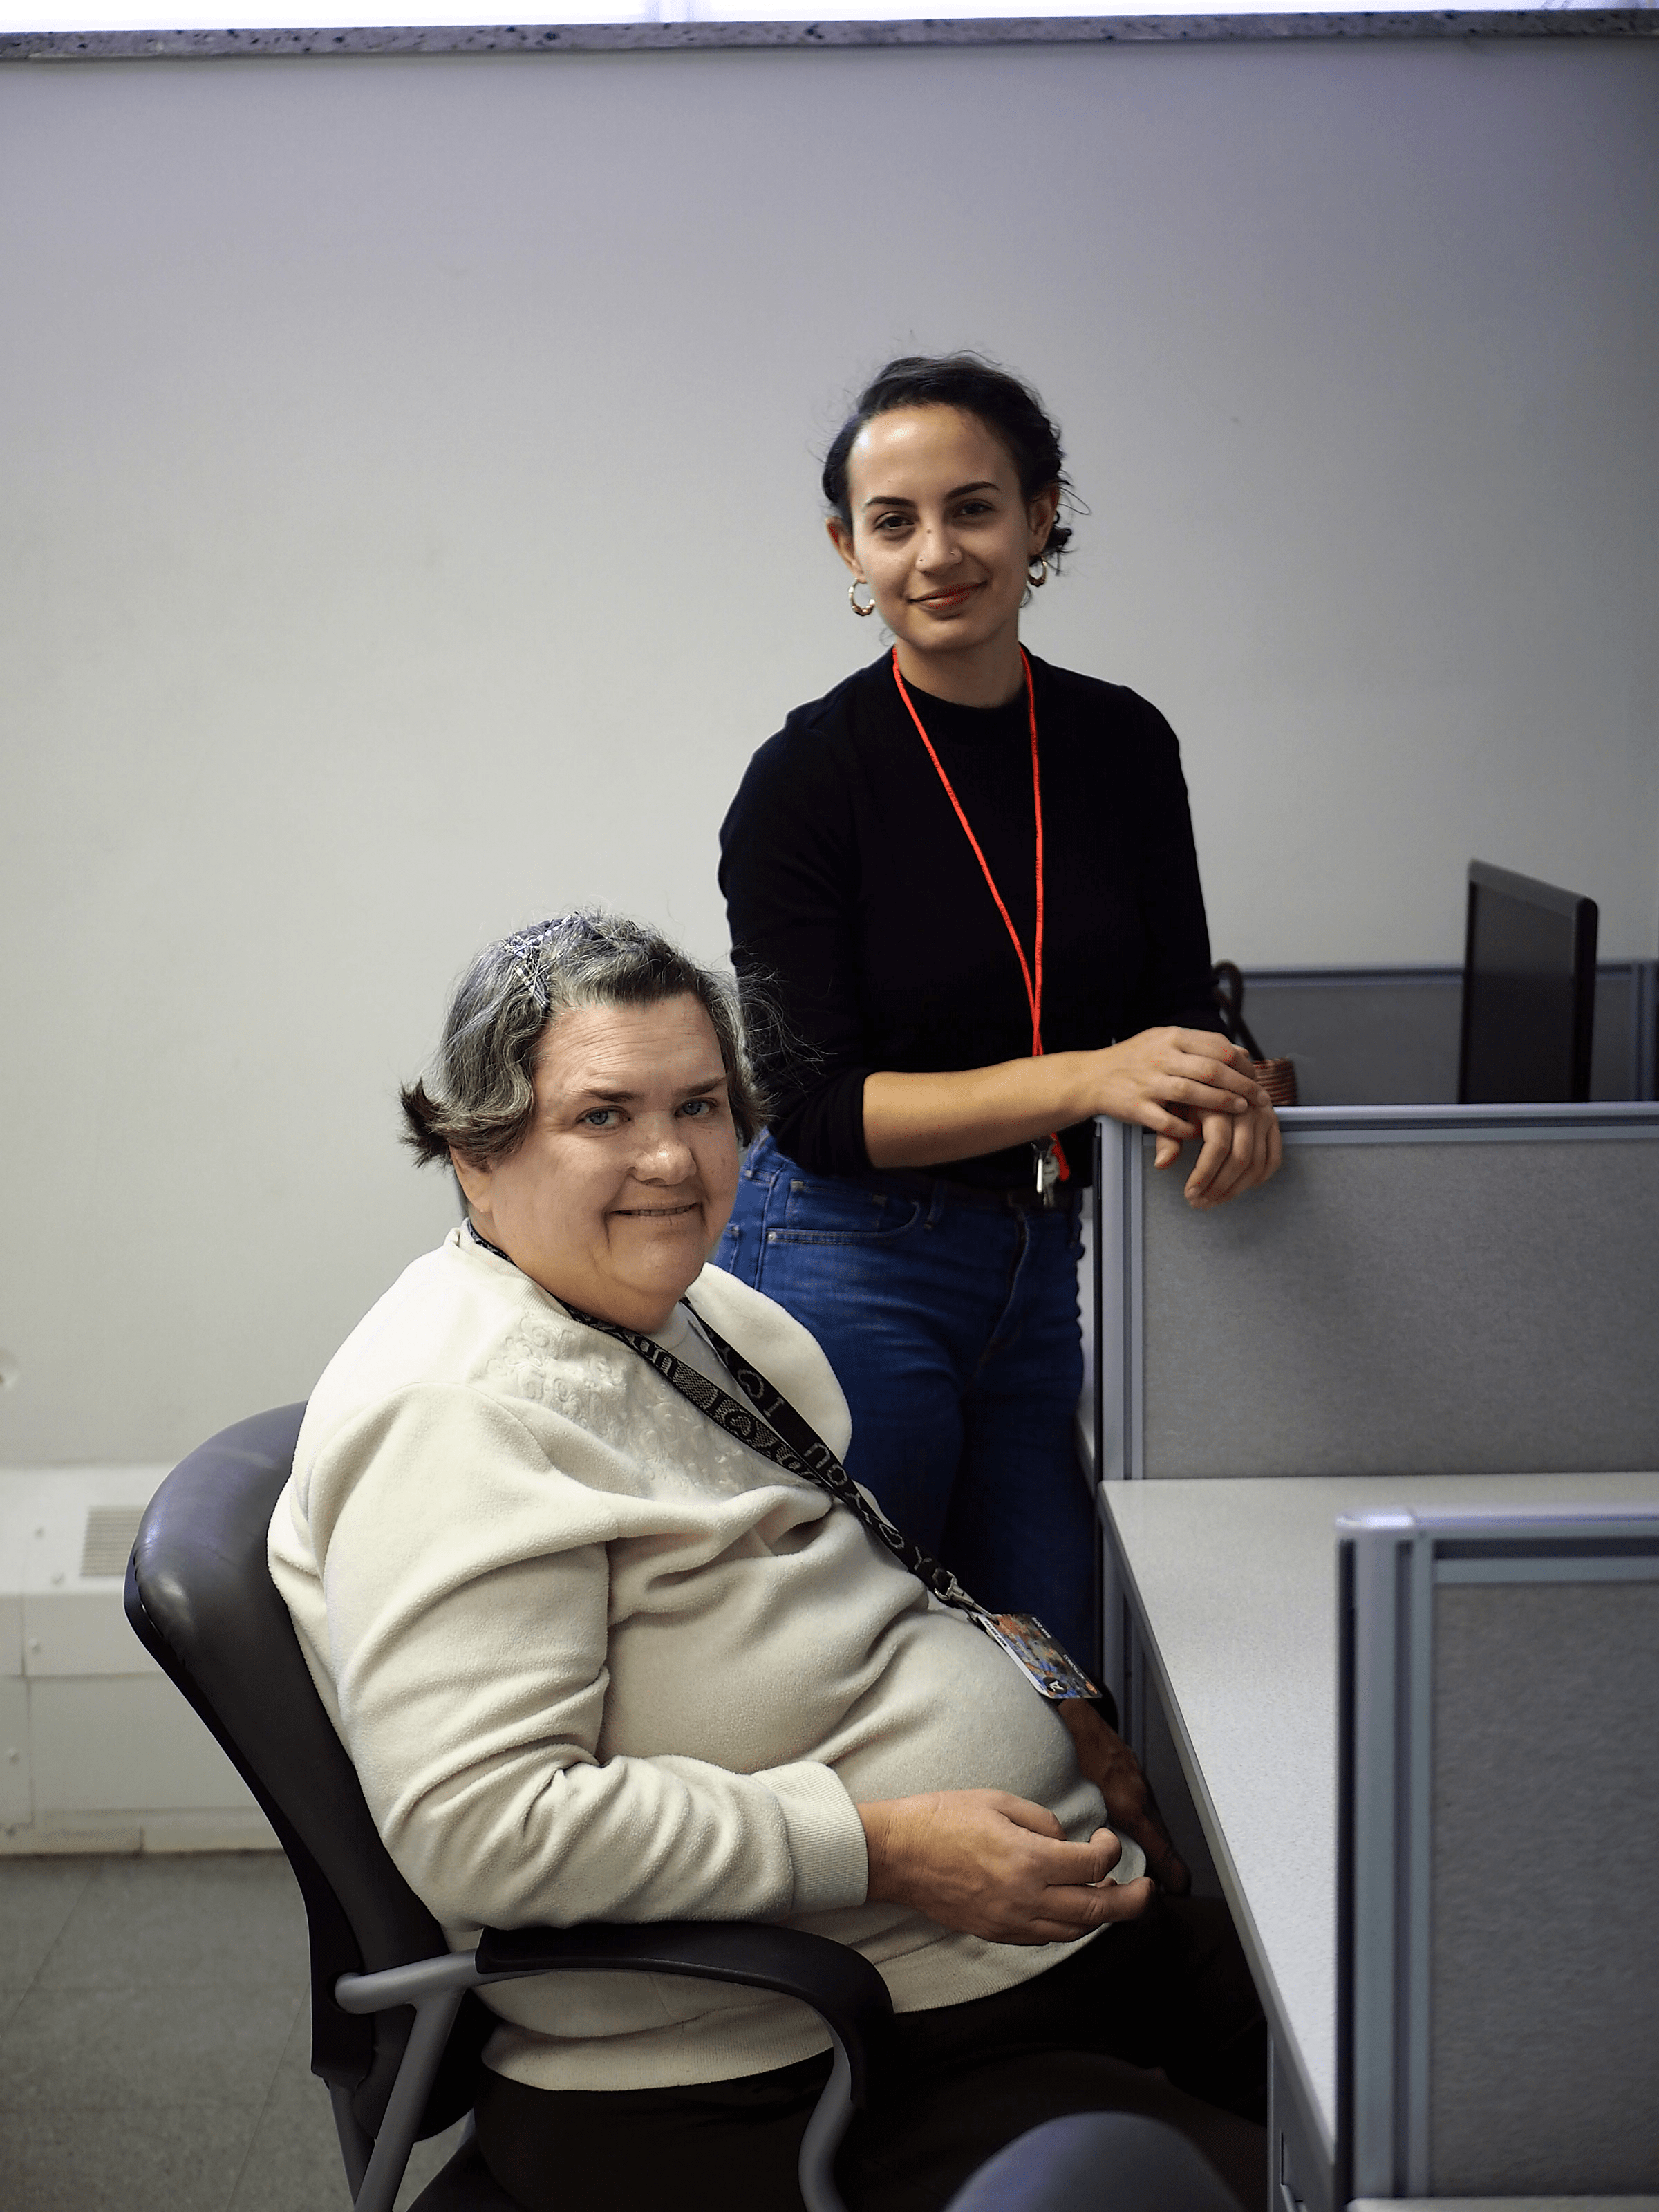 A woman is seated at a computer desk and smiling. Another woman is standing beside her.